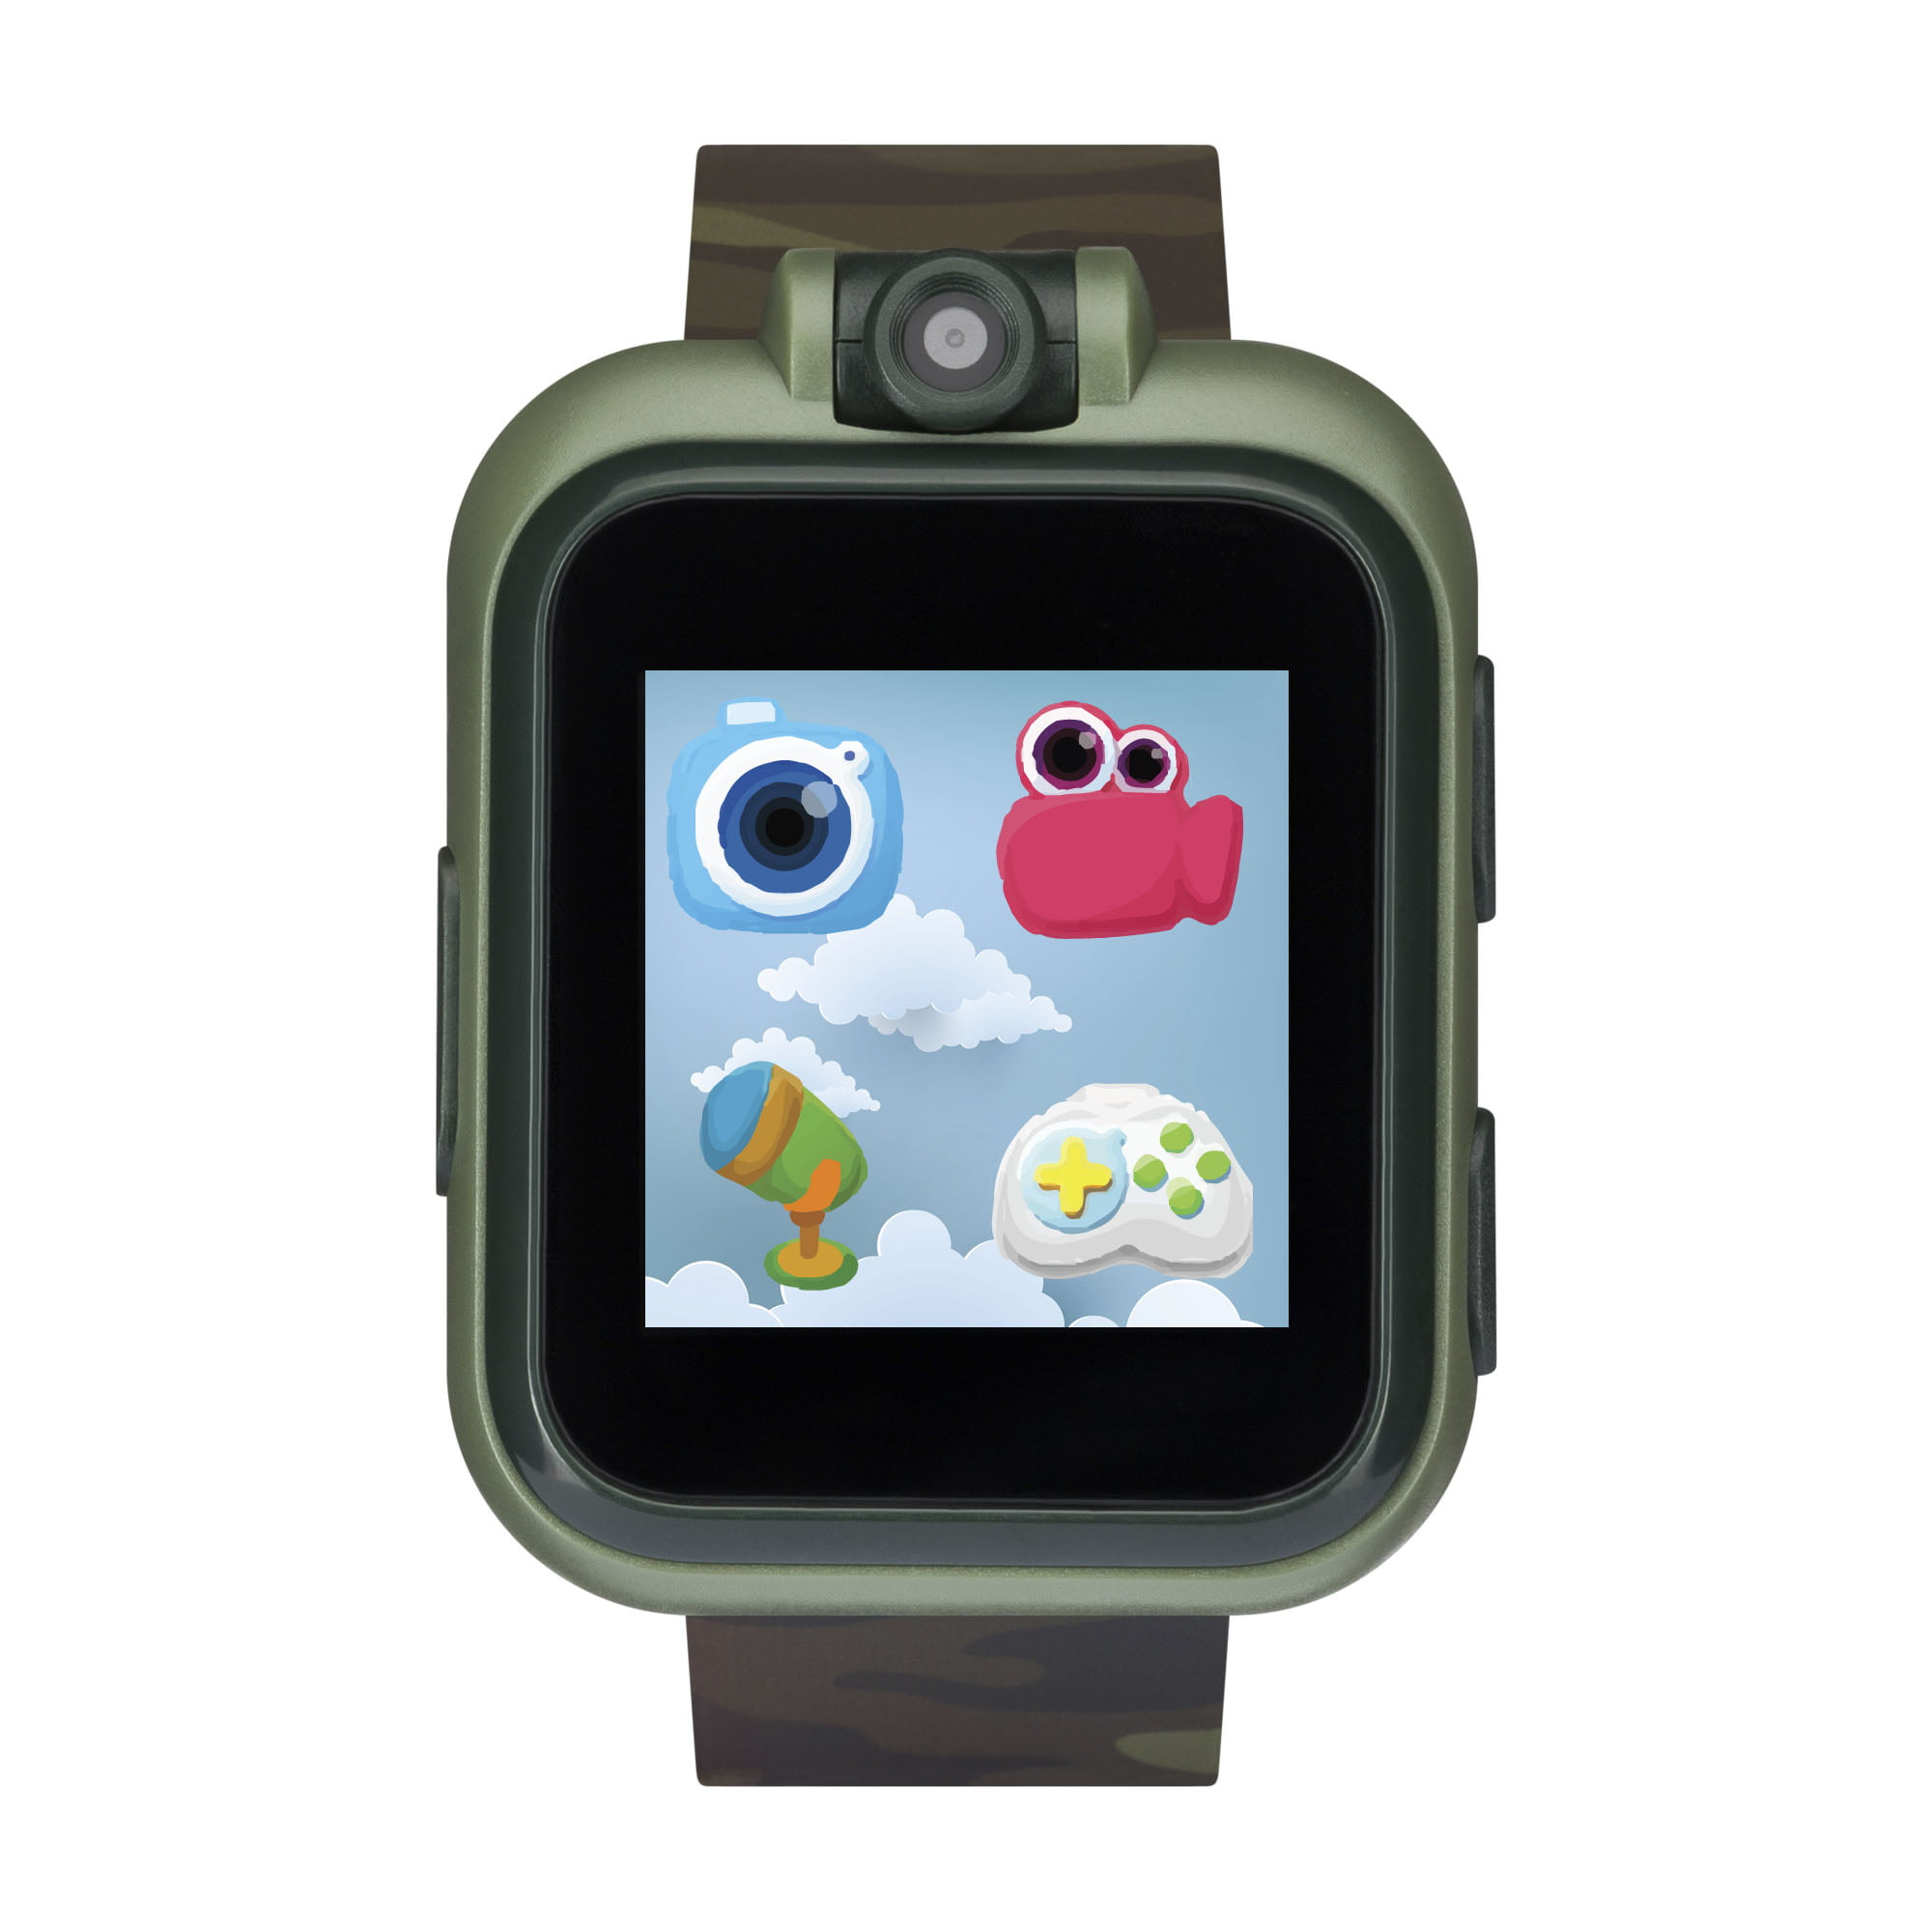 iTech Jr. Kids Smartwatch for Boys - Olive Camouflage